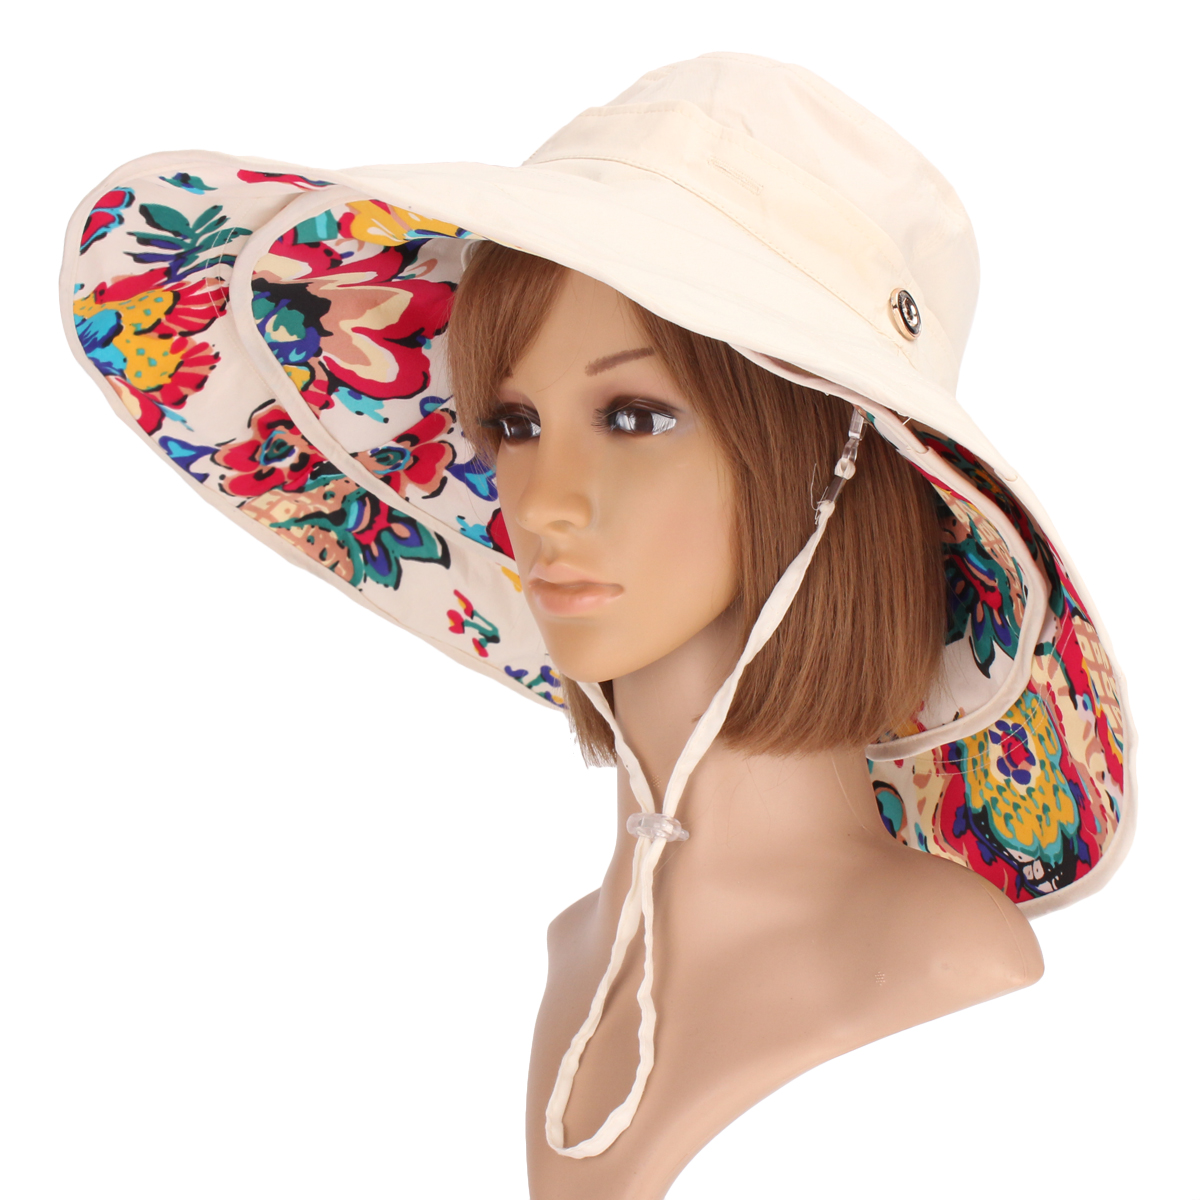 Women Ladies Anti-UV Sun Protective Caps Wide Brim Reversible Floppy Sun Hat Beach